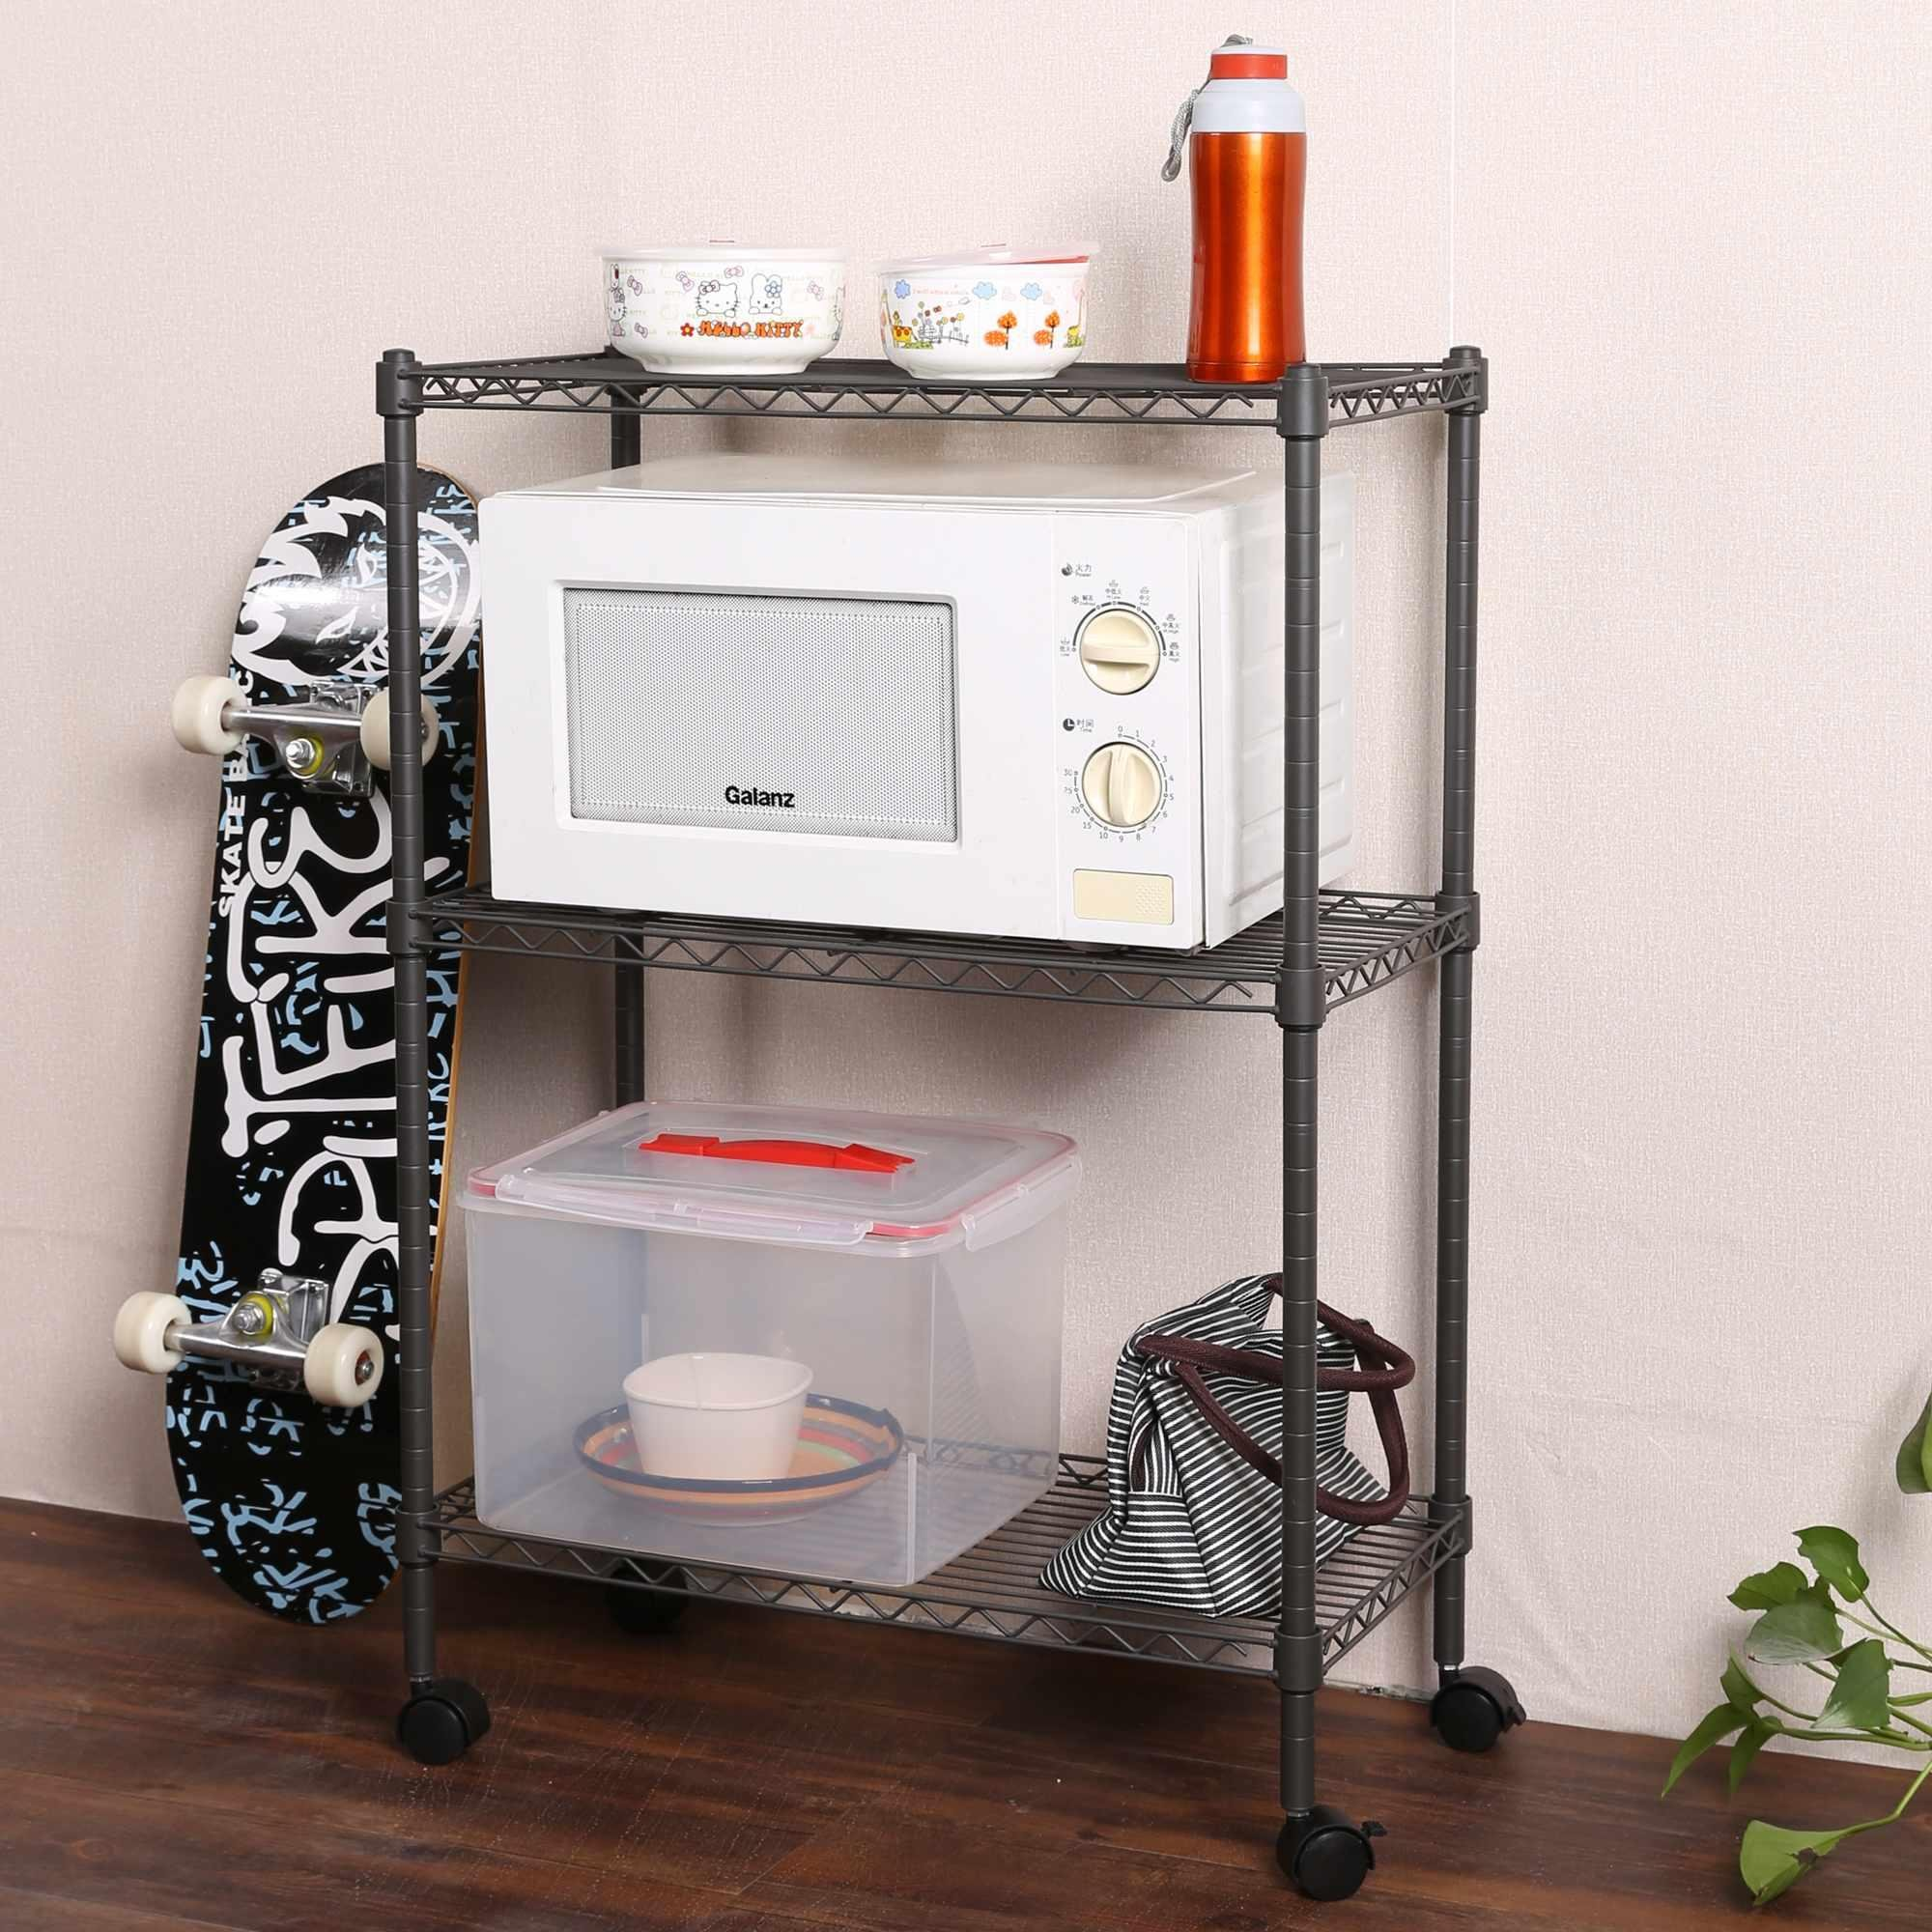 3-Tier Adjustable Steel Wire Rack Shelving Shelf Cart Portable Rolling Cart Rack with Locking Wheels, Perfect for Bathroom and Kitchens (Grey)